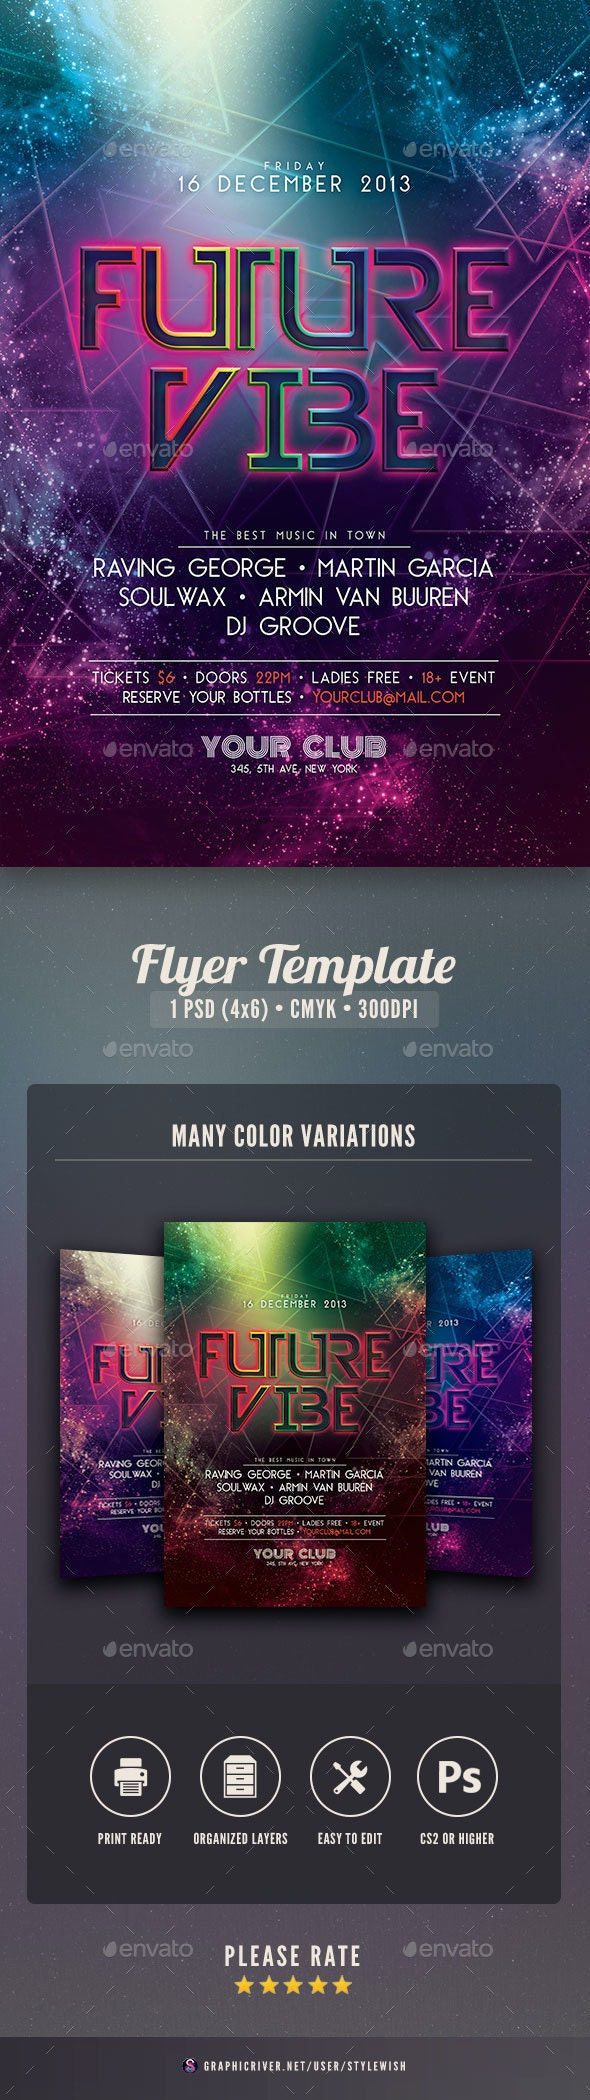 Future Vibe Flyer - Clubs & Parties Events